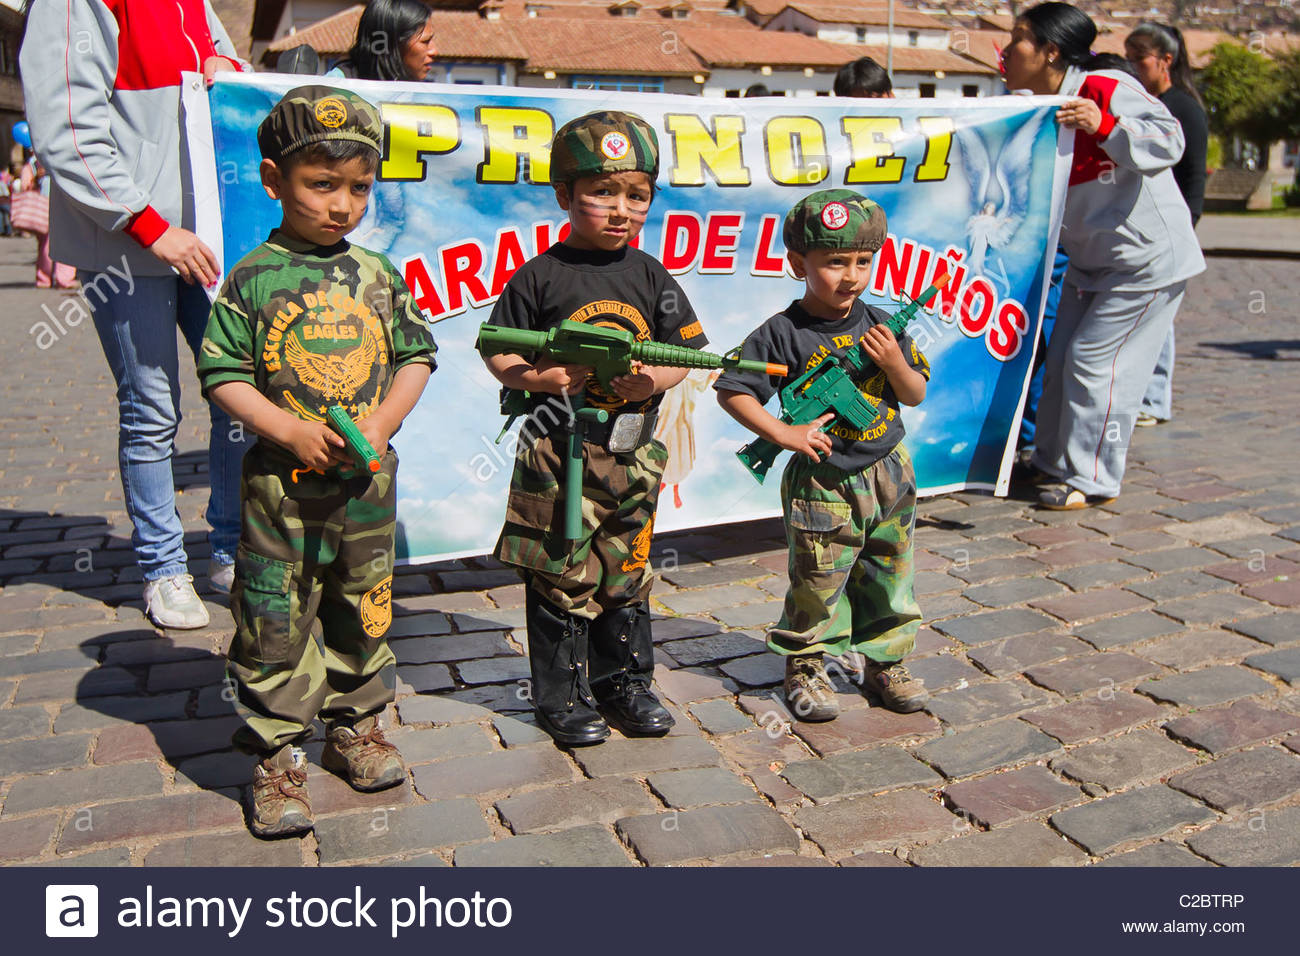 Boys dressed in military uniforms at the Pronoei holiday parade. - Stock Image